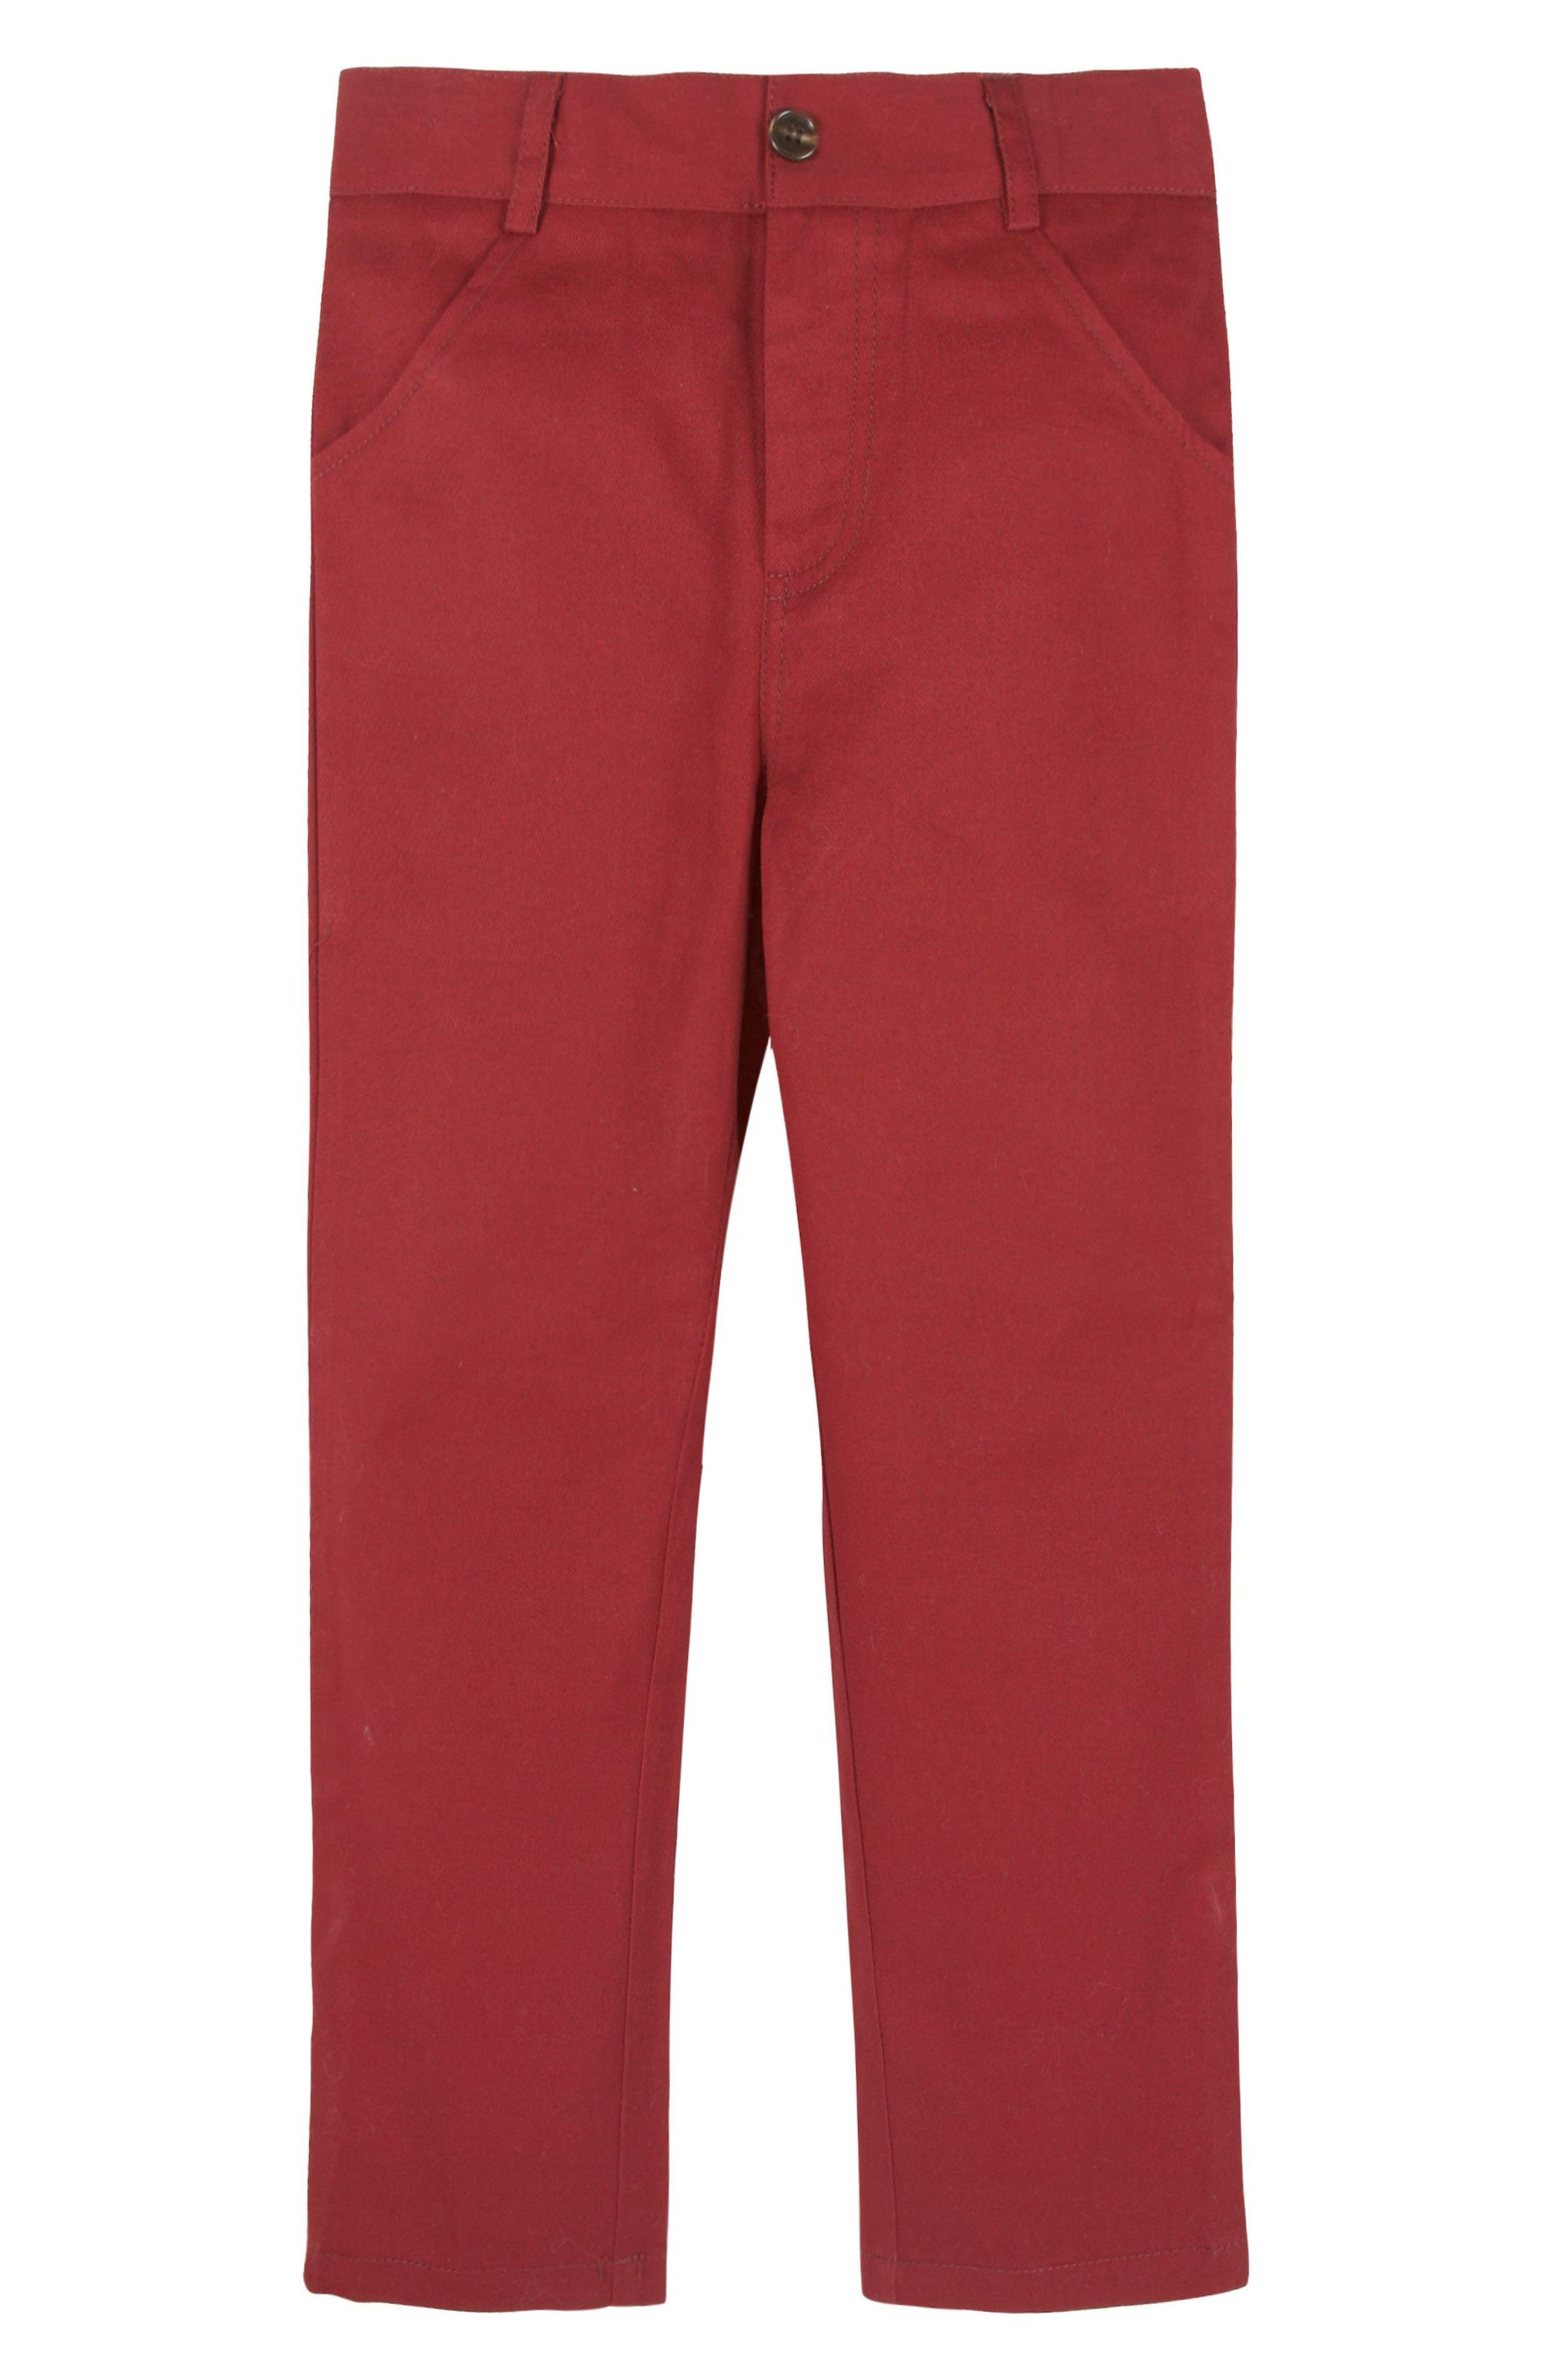 Main Image - Andy & Evan Stretch Cotton Twill Pants (Baby Boys)